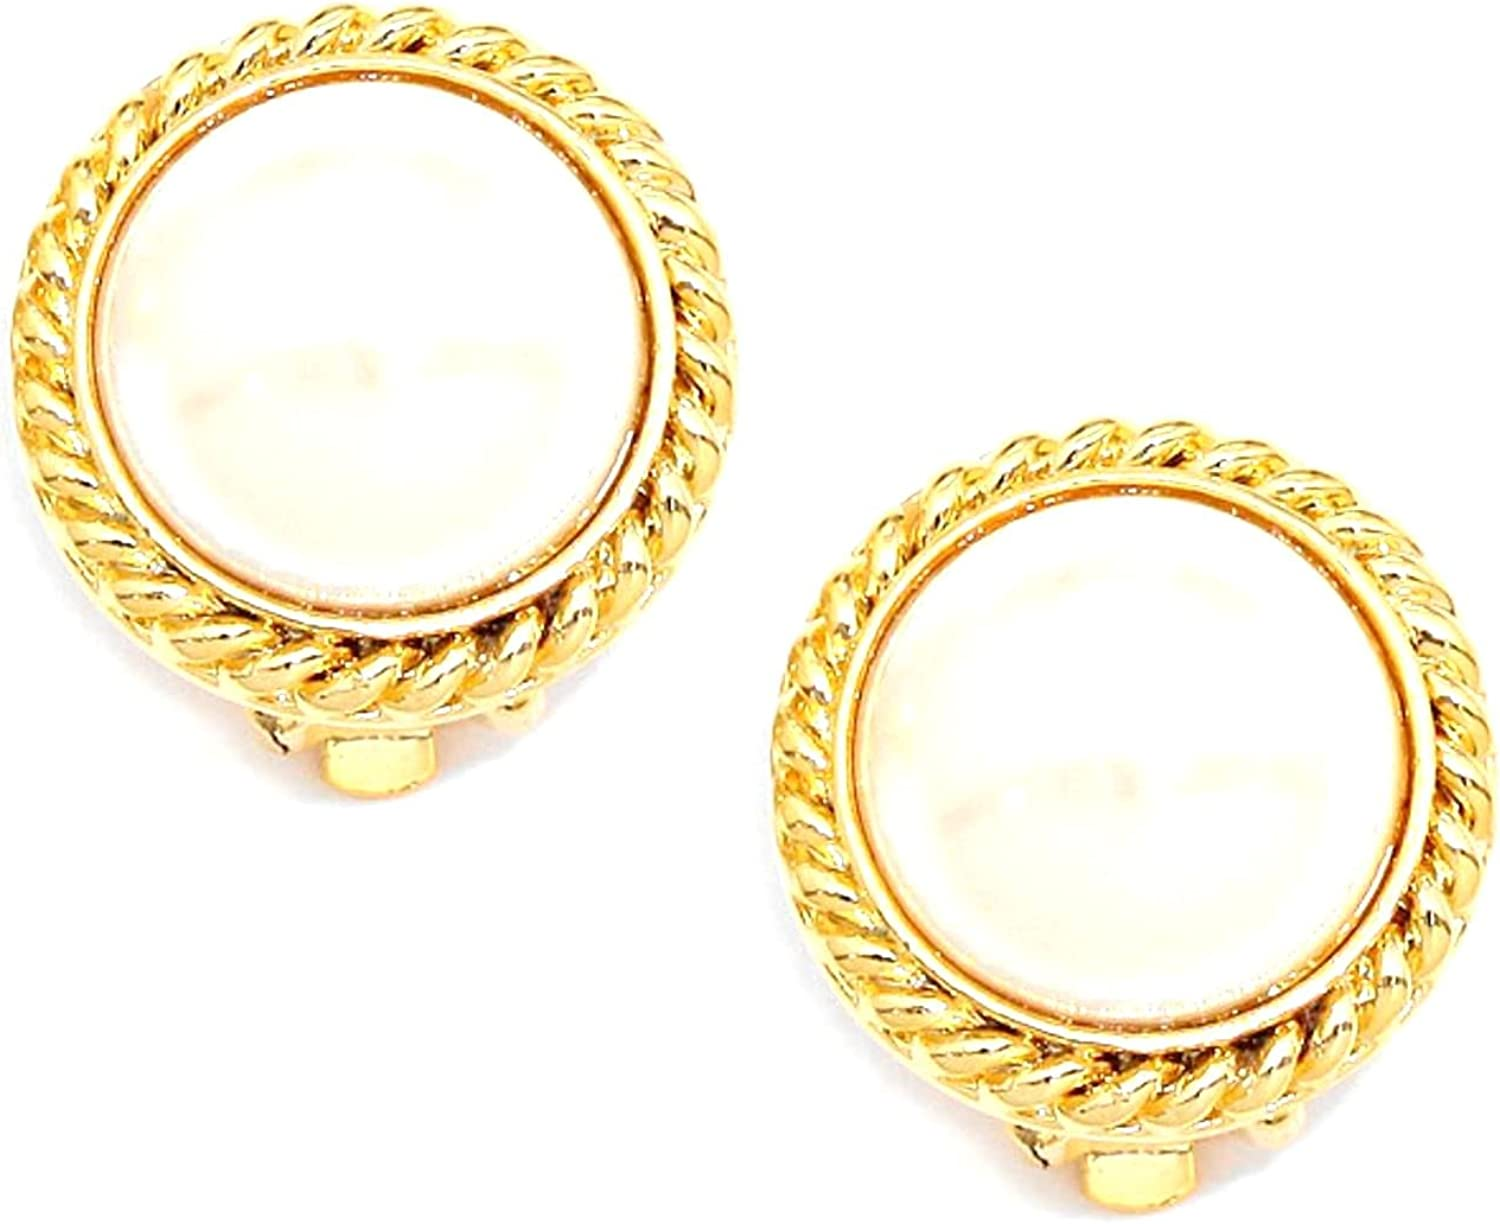 Metal Trimmed Imitation Pearl Clip on Earrings / AZERCO275-GPE